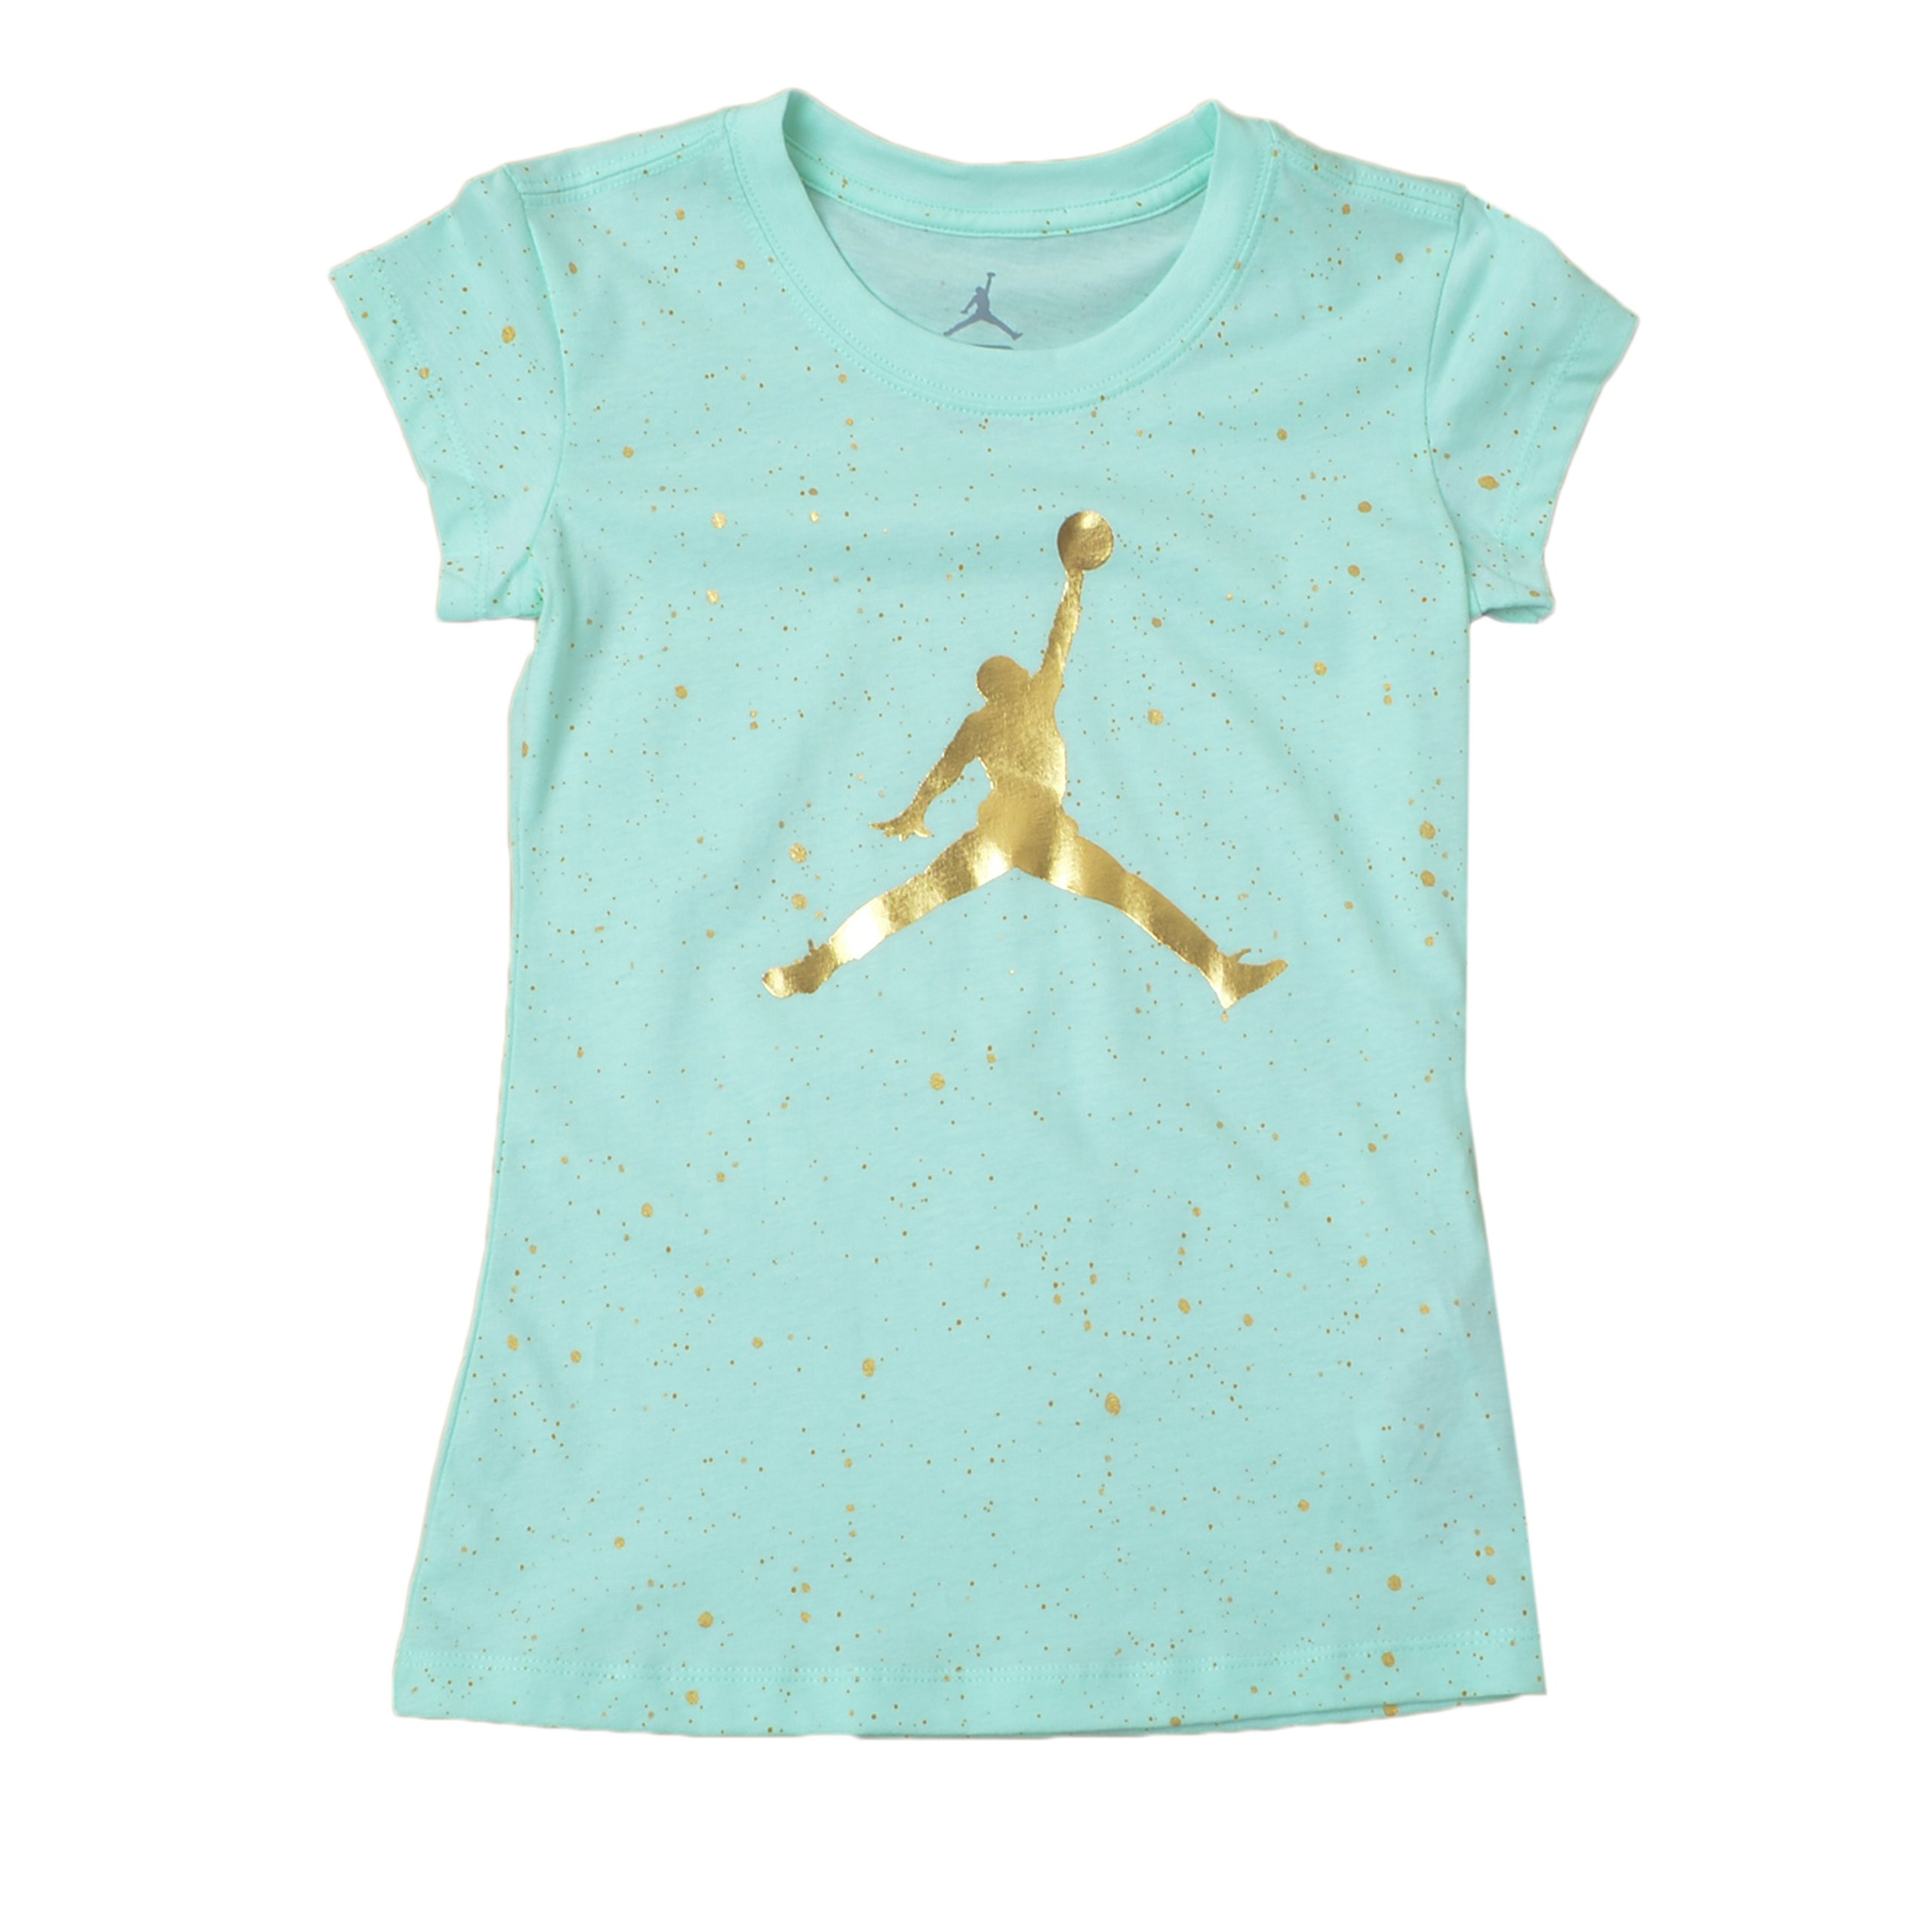 NIKE Jordan Big Girl's AOP Speckle Short-Sleeve Tee (M((10-12YRS), Mint Foam)